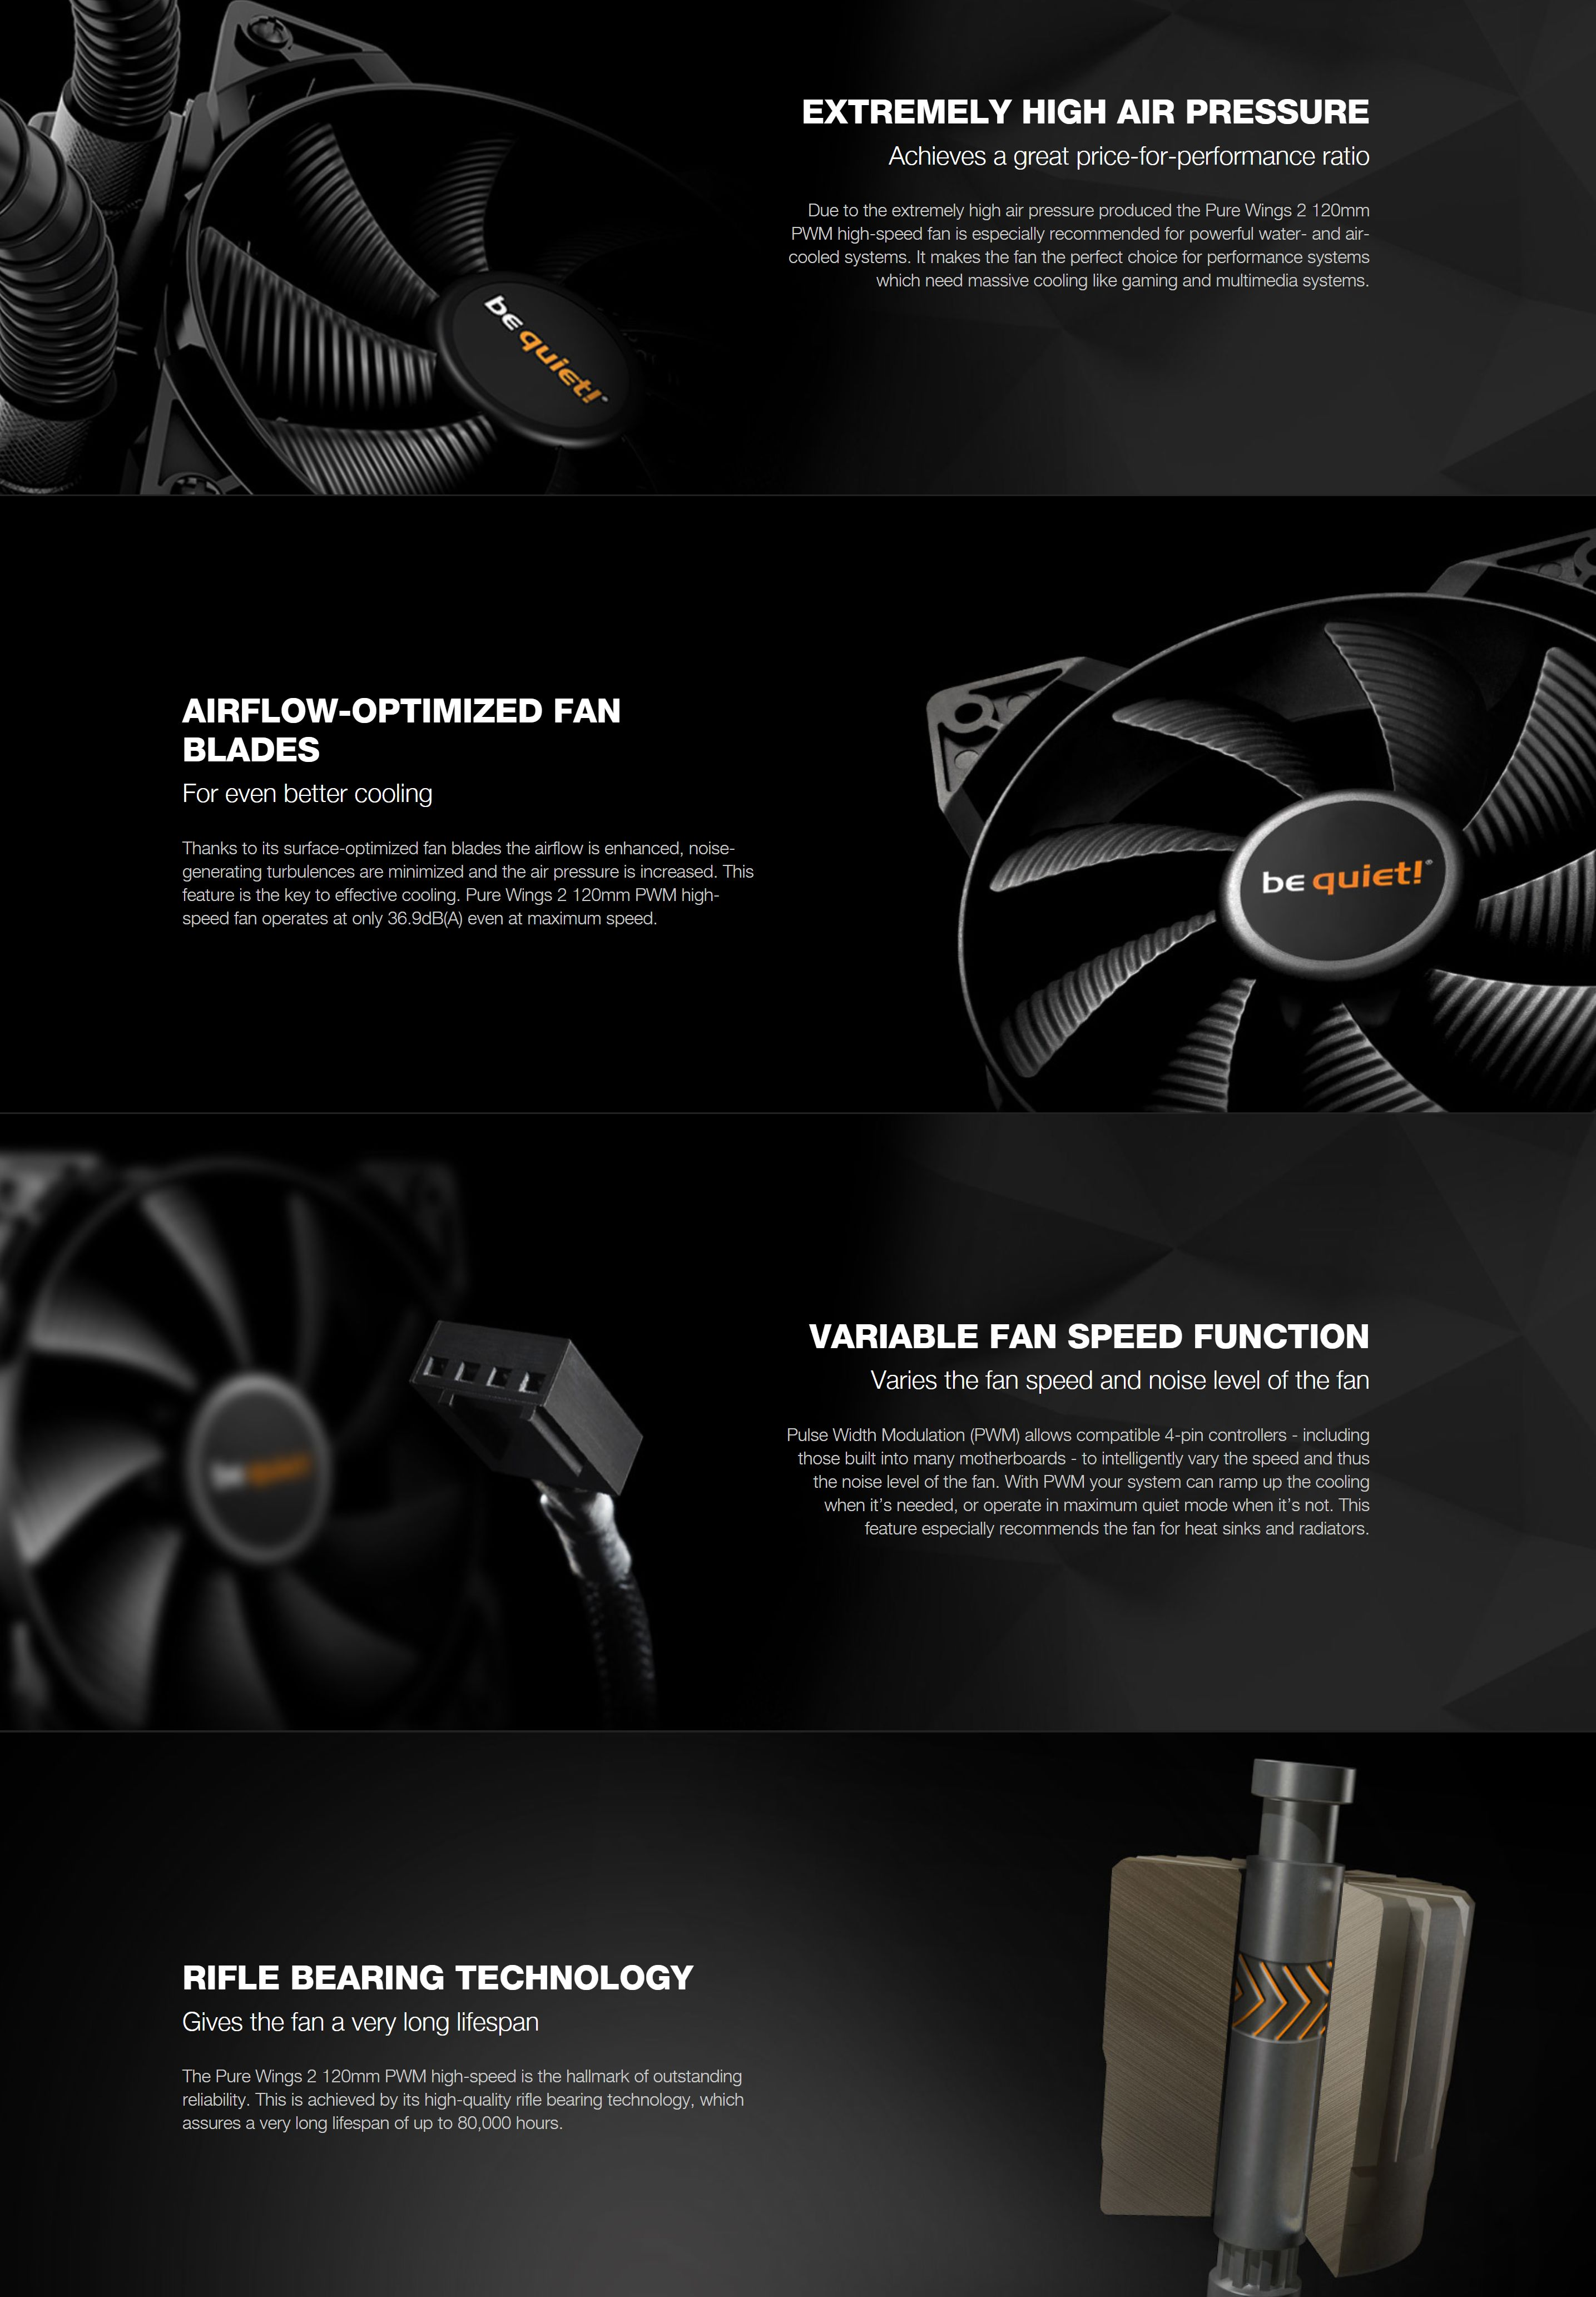 #1696 - 'PURE WINGS 2 I 120mm PWM high-speed silent essential Fans from be quiet!' - www_bequiet_com.jpg